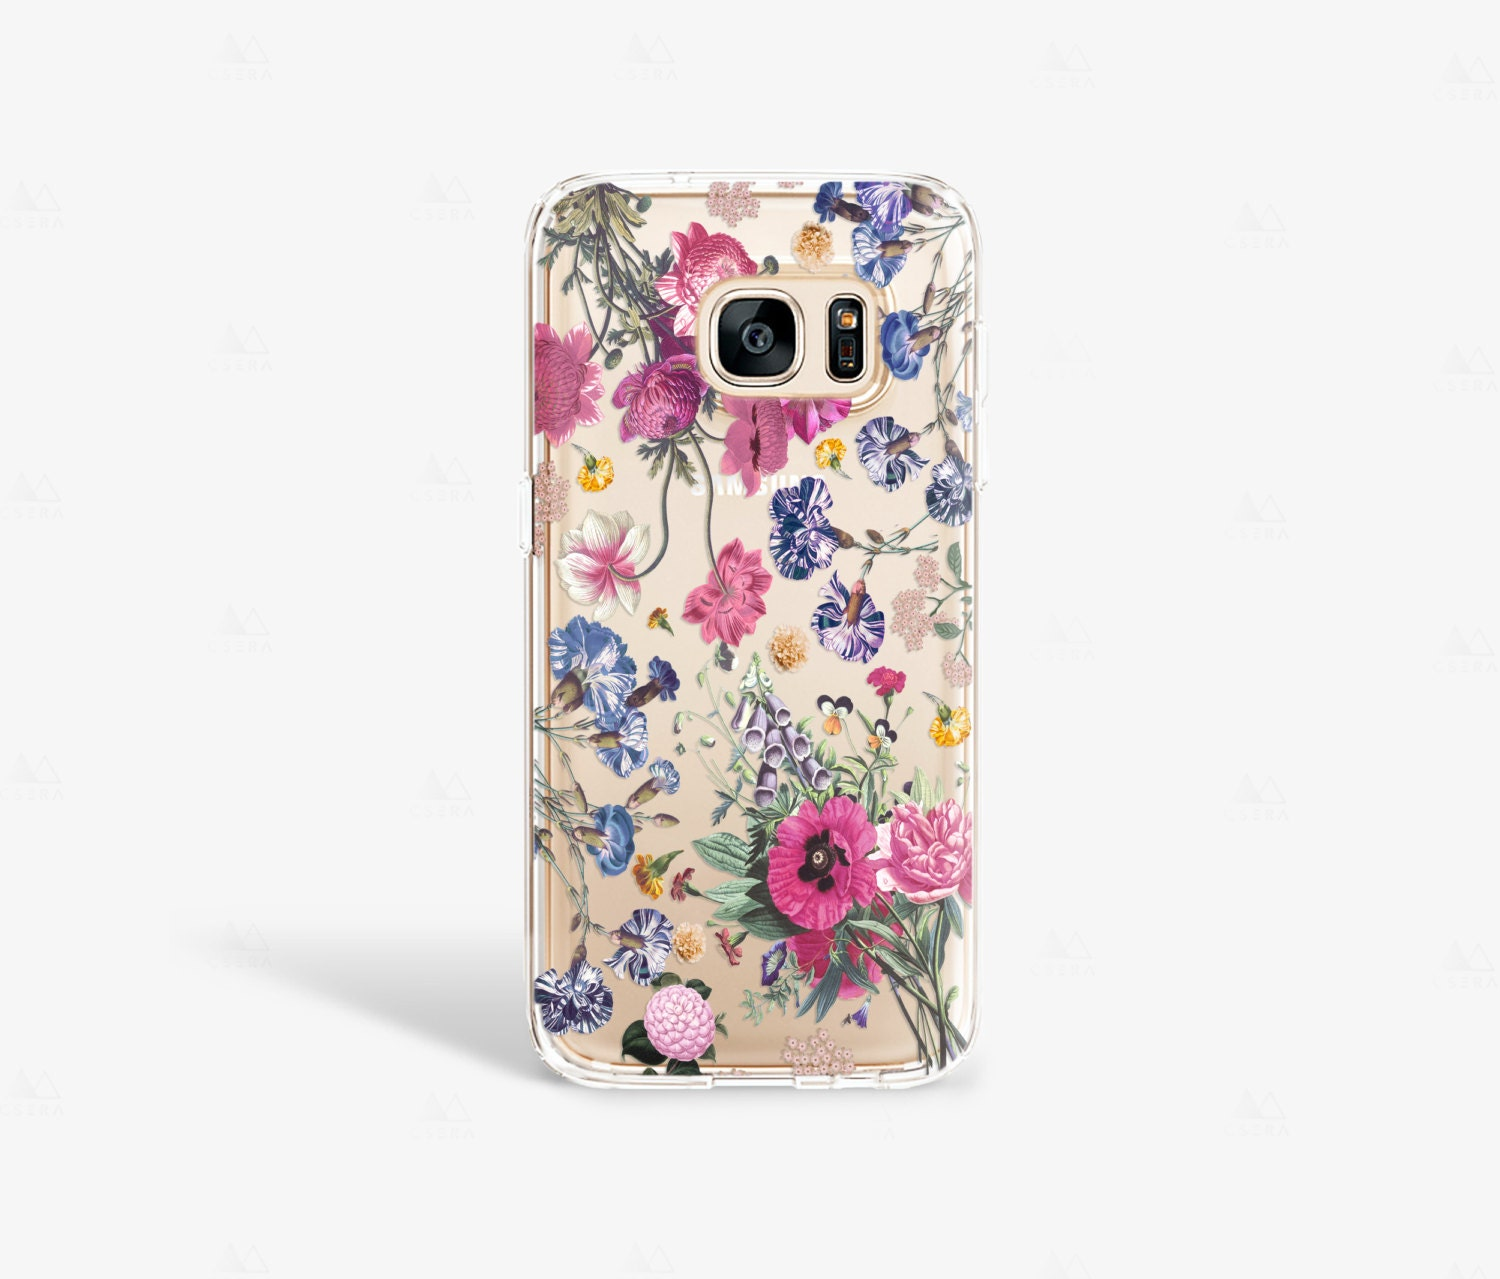 Samsung Galaxy S7 Edge Case Clear Floral Samsung Galaxy S7